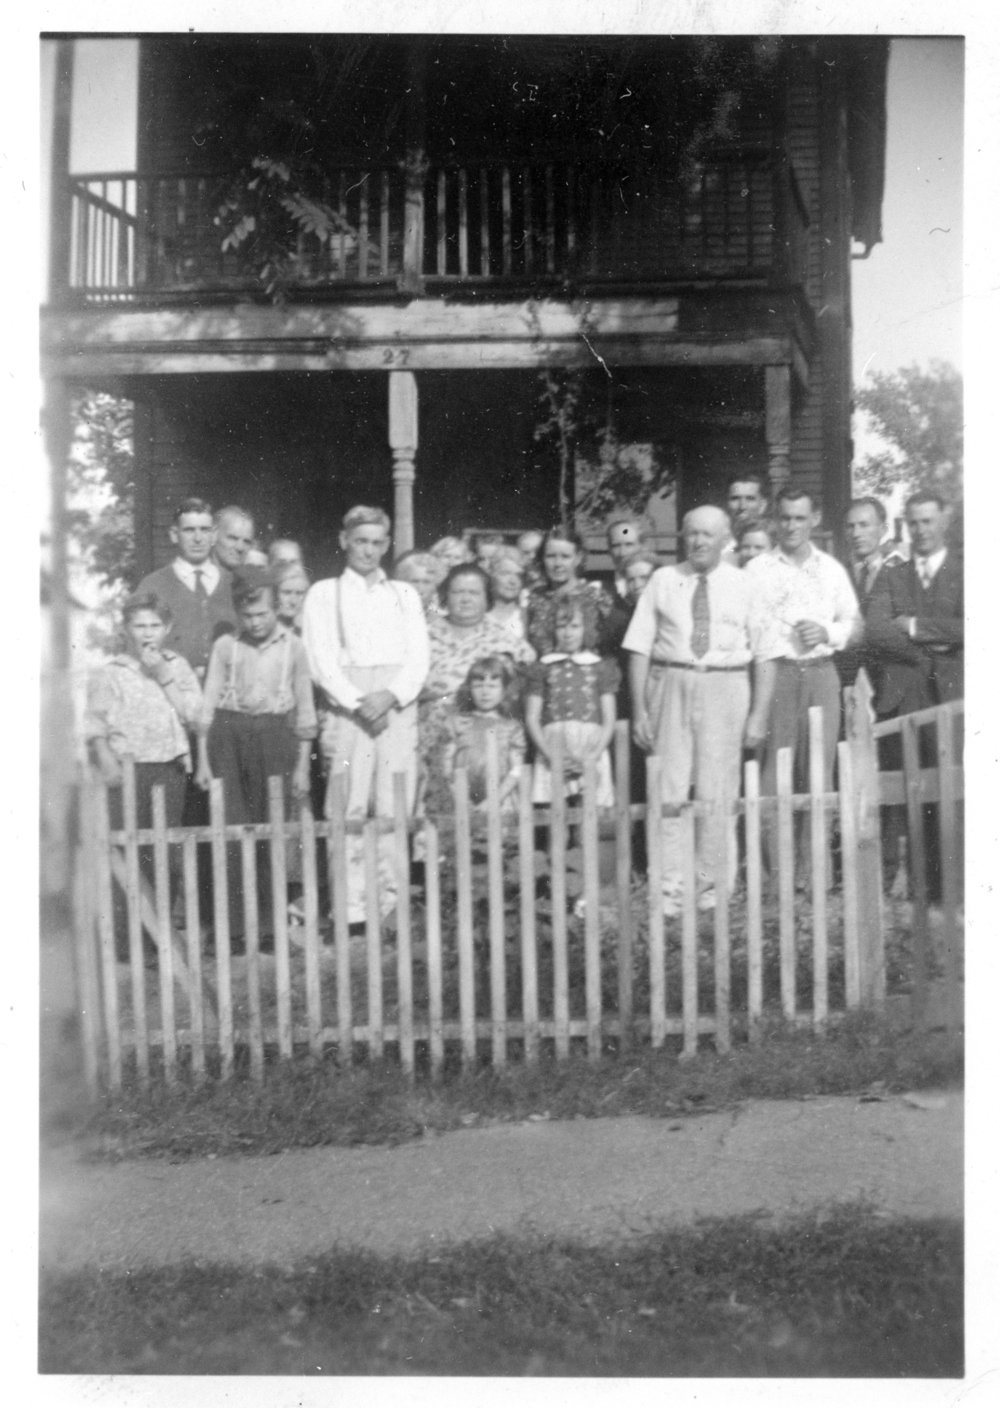 Worker's Alliance Lodge group photographs - 2